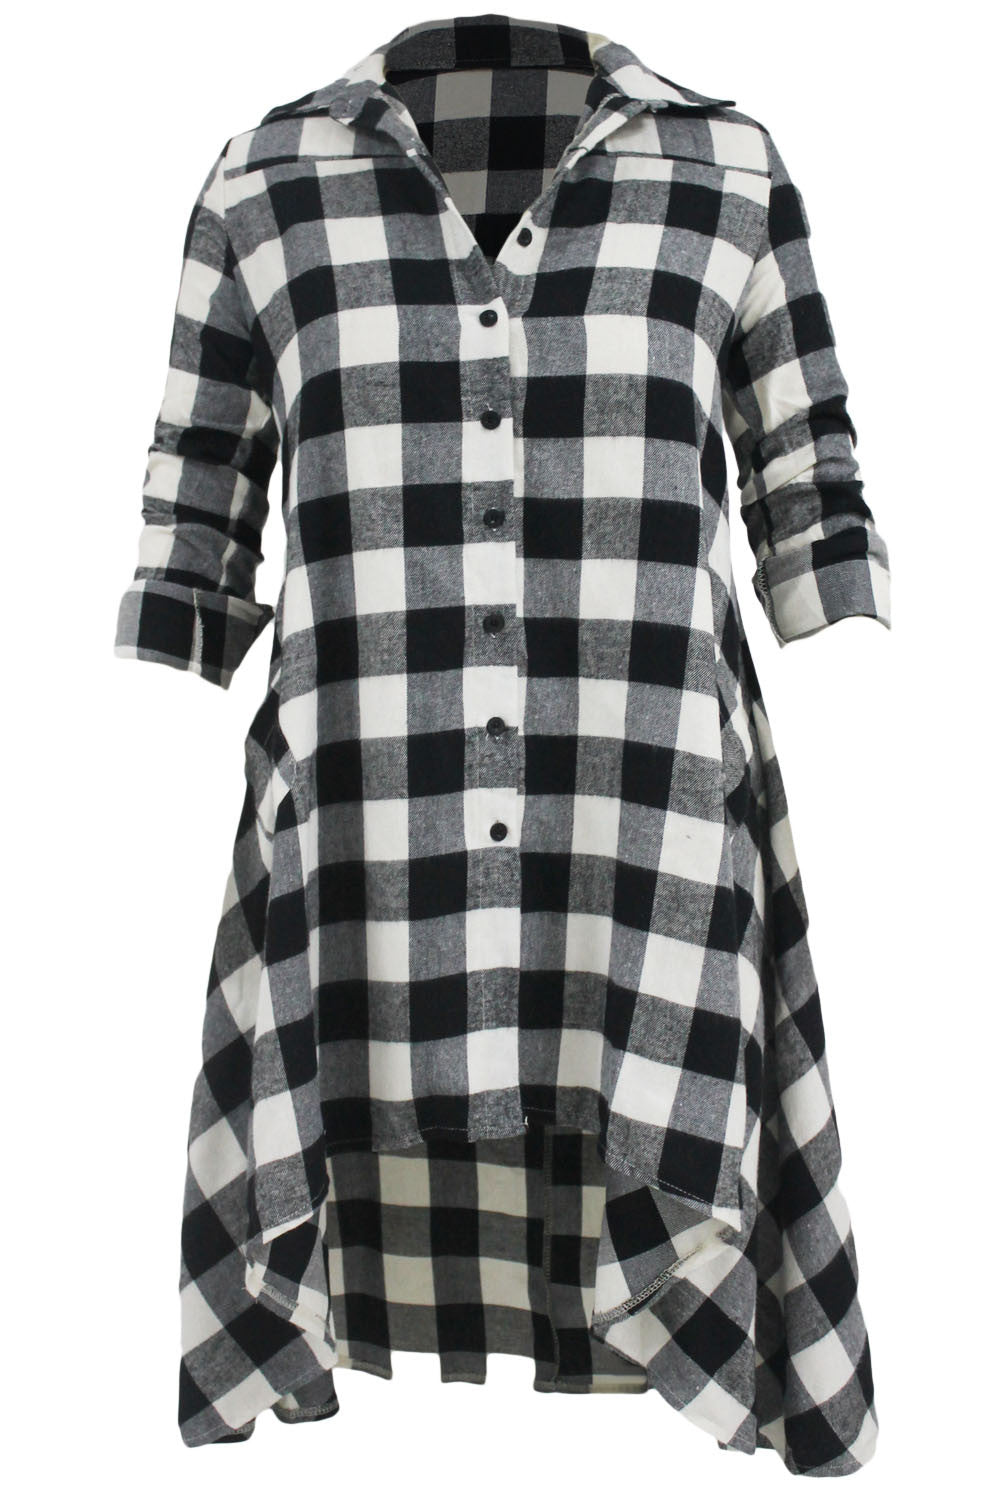 Plaid Flared High Low Shirt Dress - IBL Fashion - 4